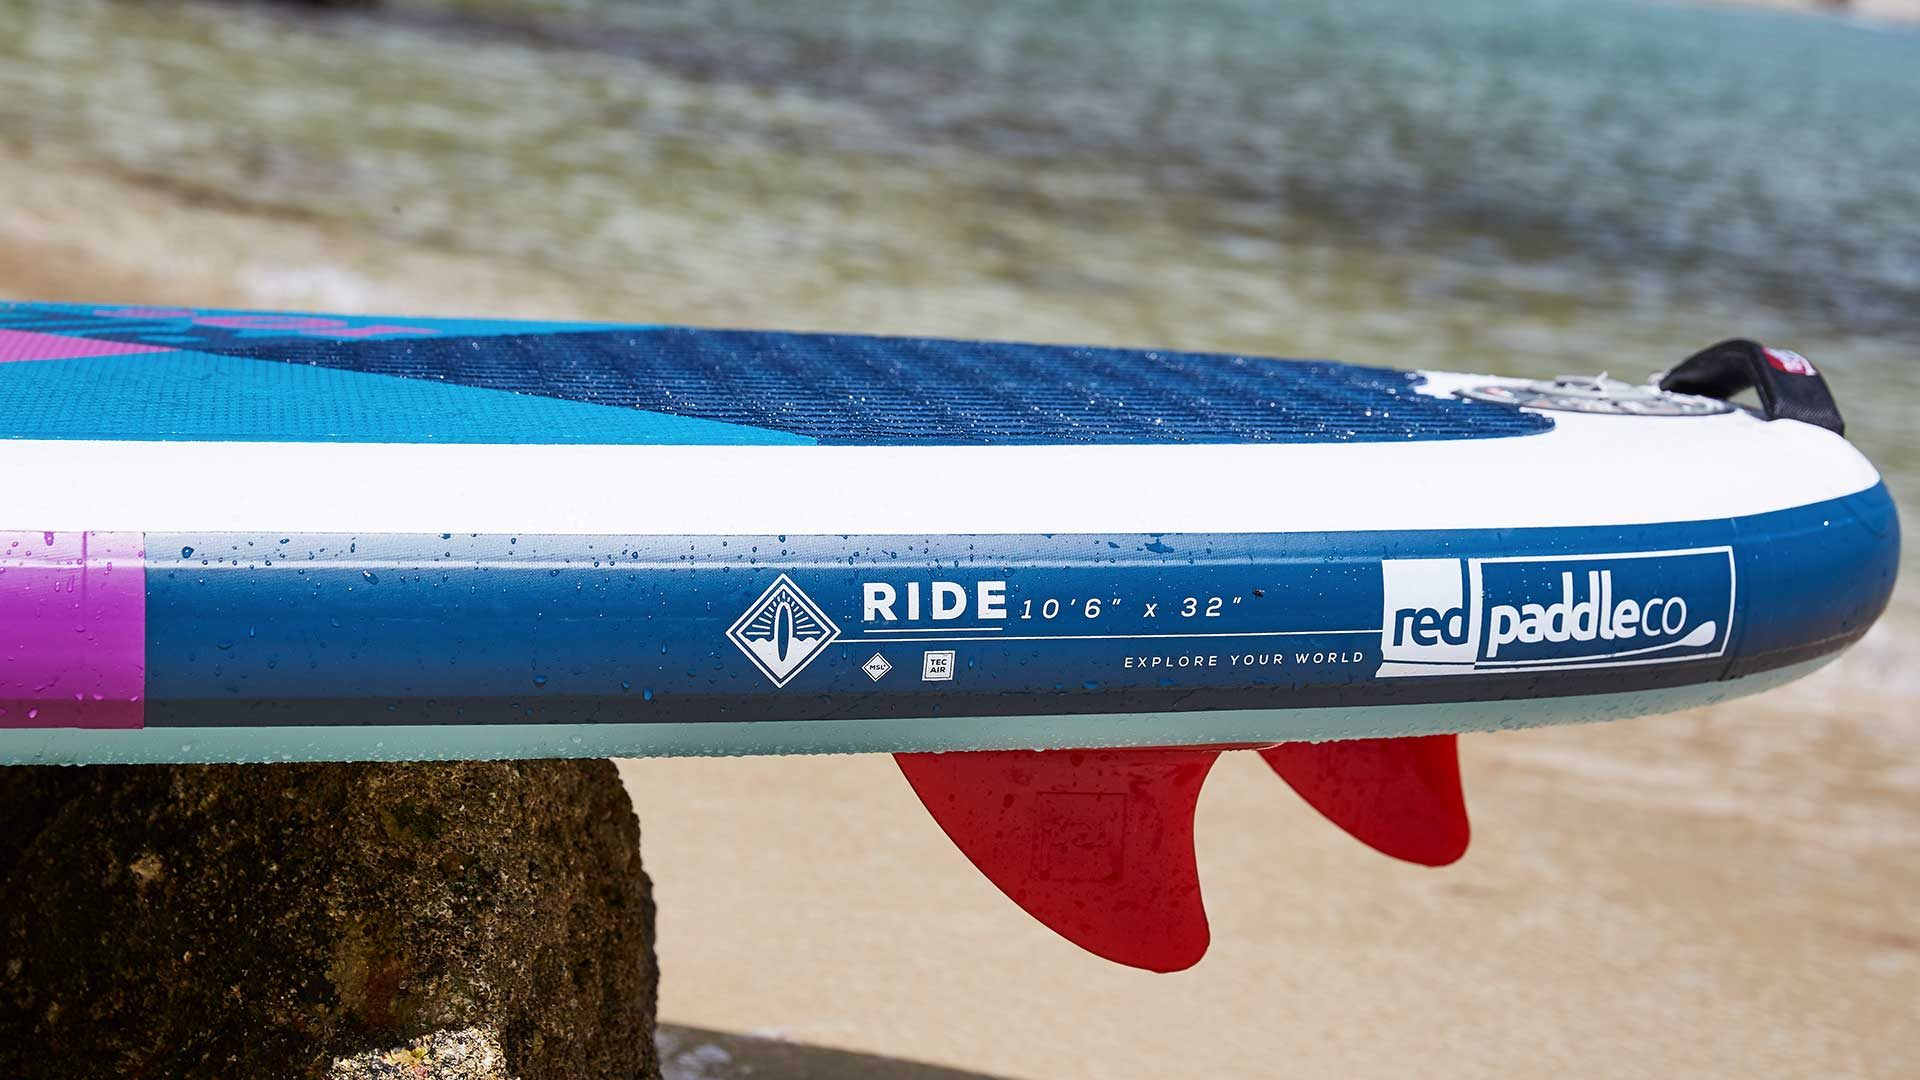 redpaddleco-106-ride-se-msl-inflatable-paddle-board-desktop-gallery-fins